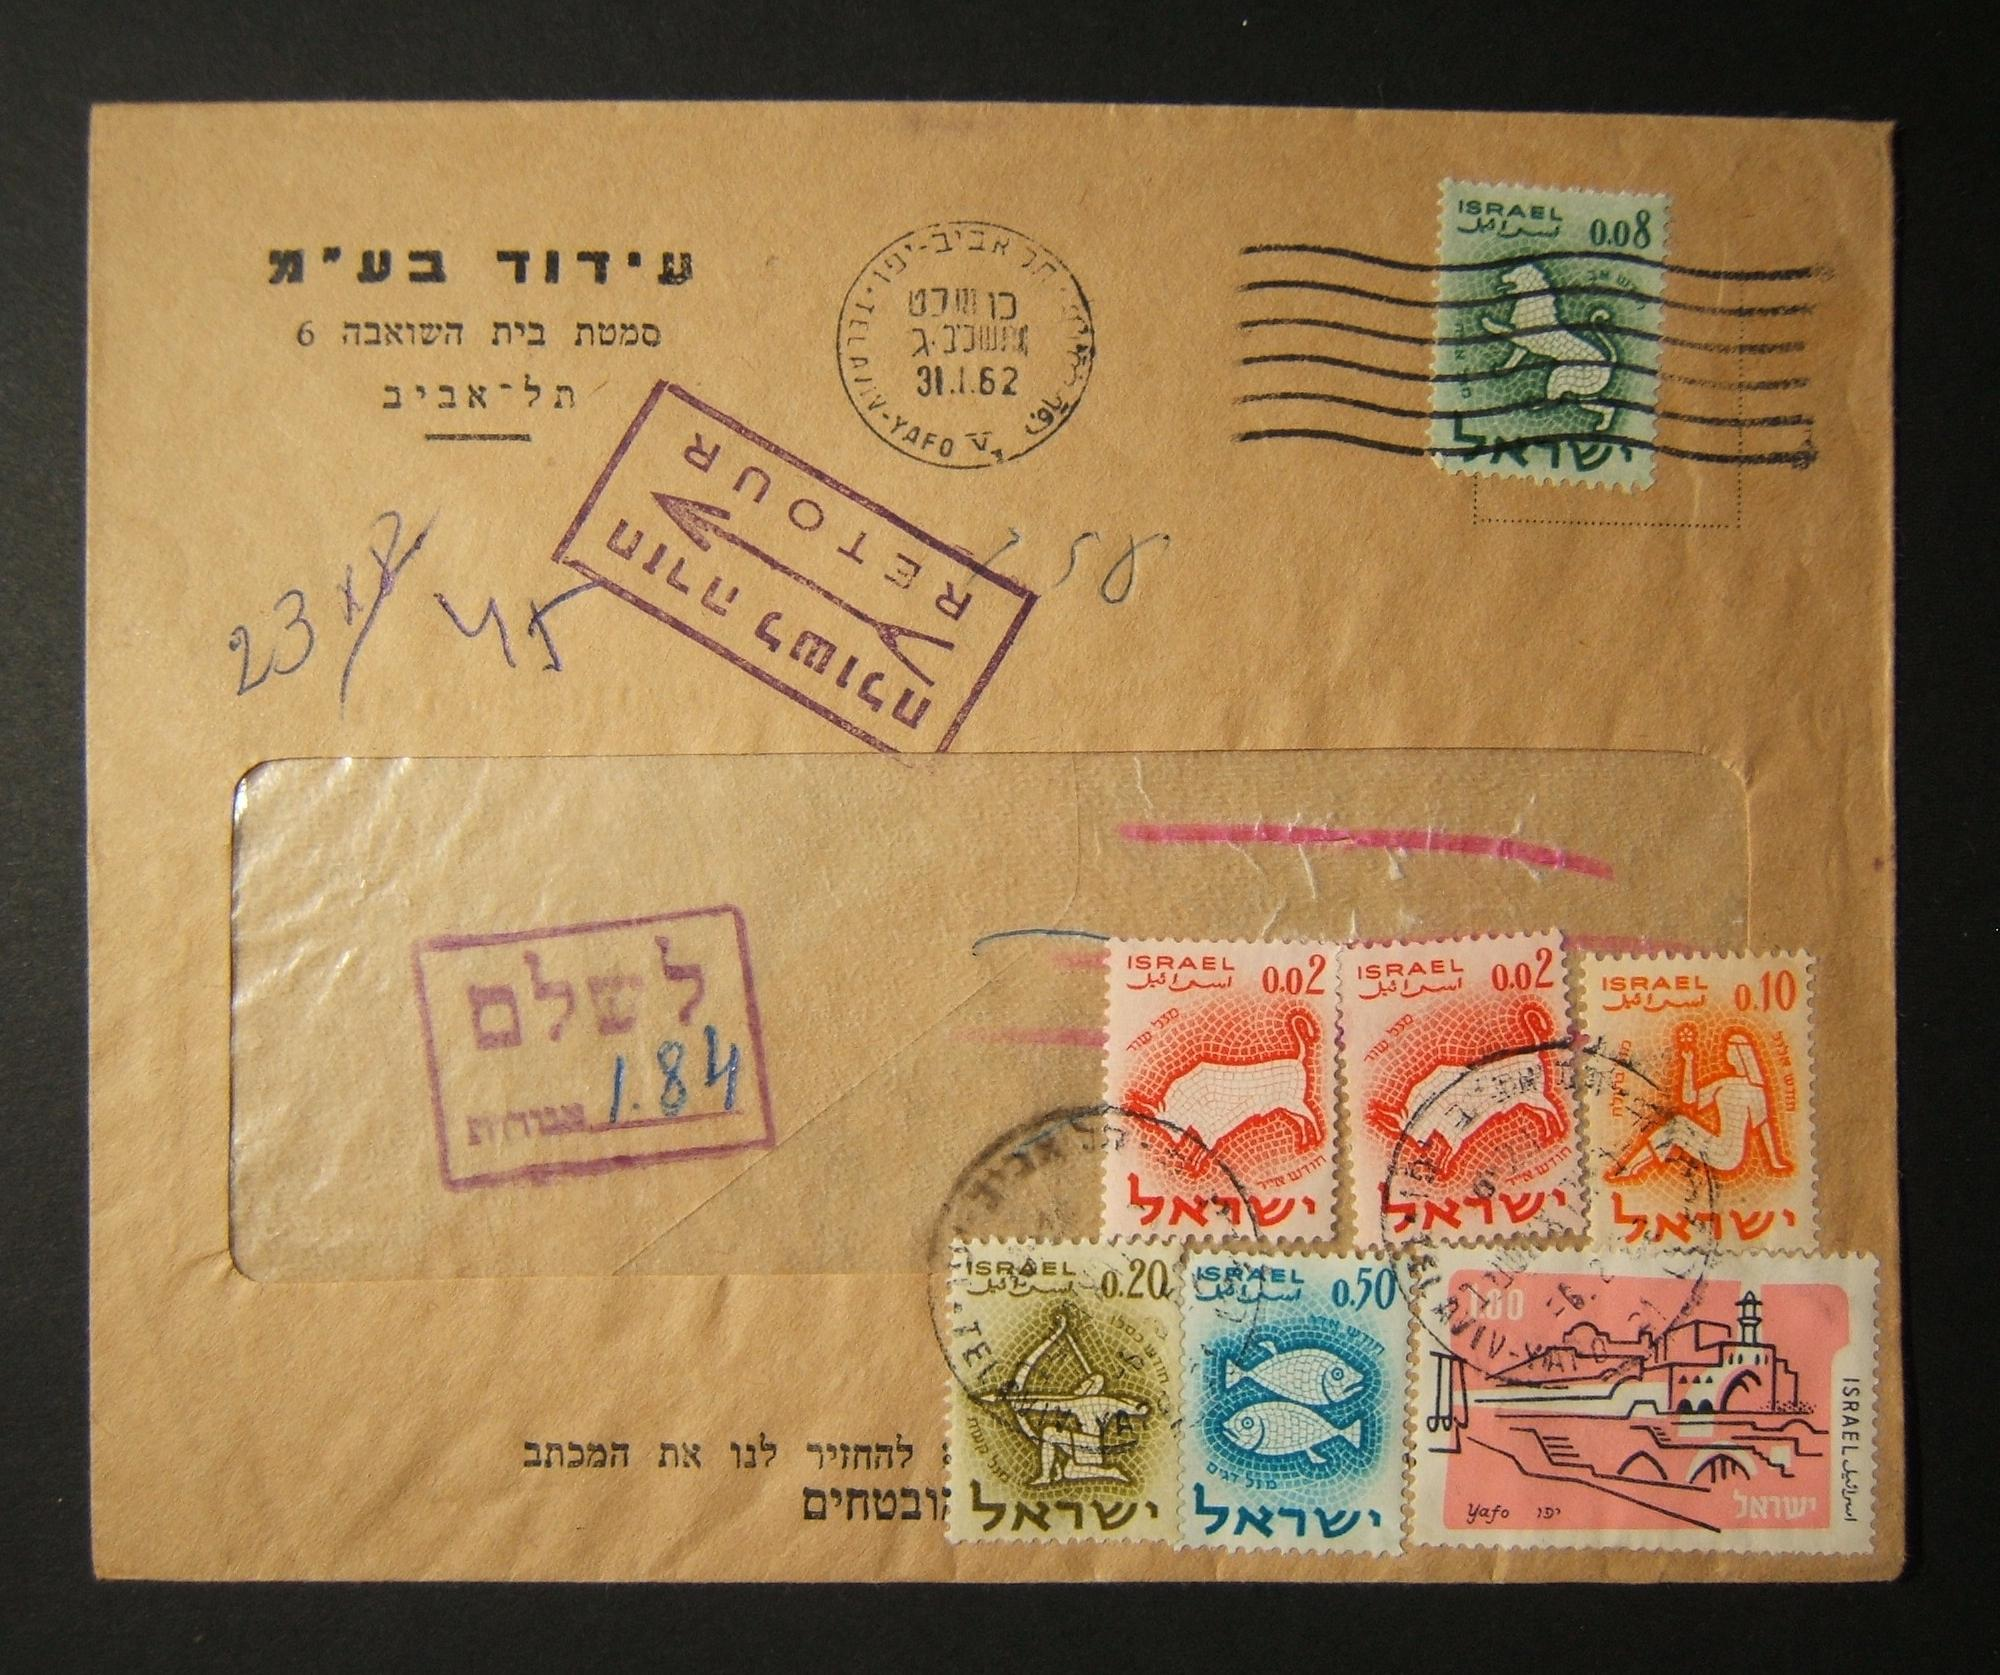 1962 domestic 'top of the pile' taxed franking: 31-1-62 printed matter cover ex TLV branch of Idud Ltd. and franked 8 Ag at domestic PM rate using 1961 Zodiac Ba208, but returned t